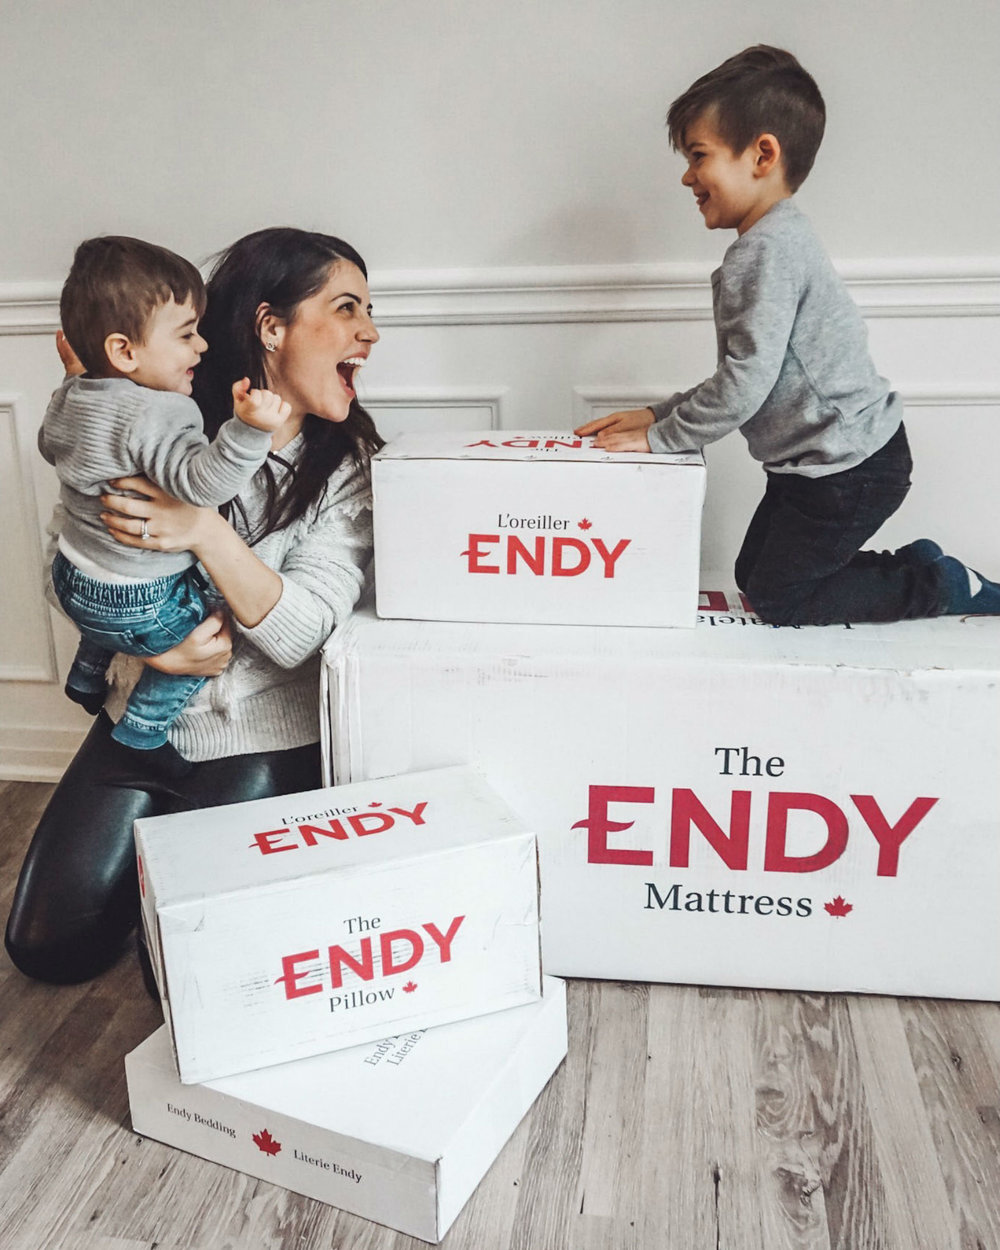 """Vanessa Giuliani (@mommunity_) - Giuliani runs Mommunity, a community organization based in Toronto that brings together """"Mompreneurs"""" to showcase their products.""""Literally my reaction when I received my @endy sleep set last week. Why?1. I've been craving deep sleep since I had Gabriel in 2015. By the time he was finally sleeping through the night, Lucas was born and I was up nursing him through the night. #sleeplessfor3years2. This was literally On my list of dream brands to work with #goals3. Endy is Canadian-made from a Canadian Company #supportlocal4. Sleep. Like really, really, realllllly good sleep. """""""